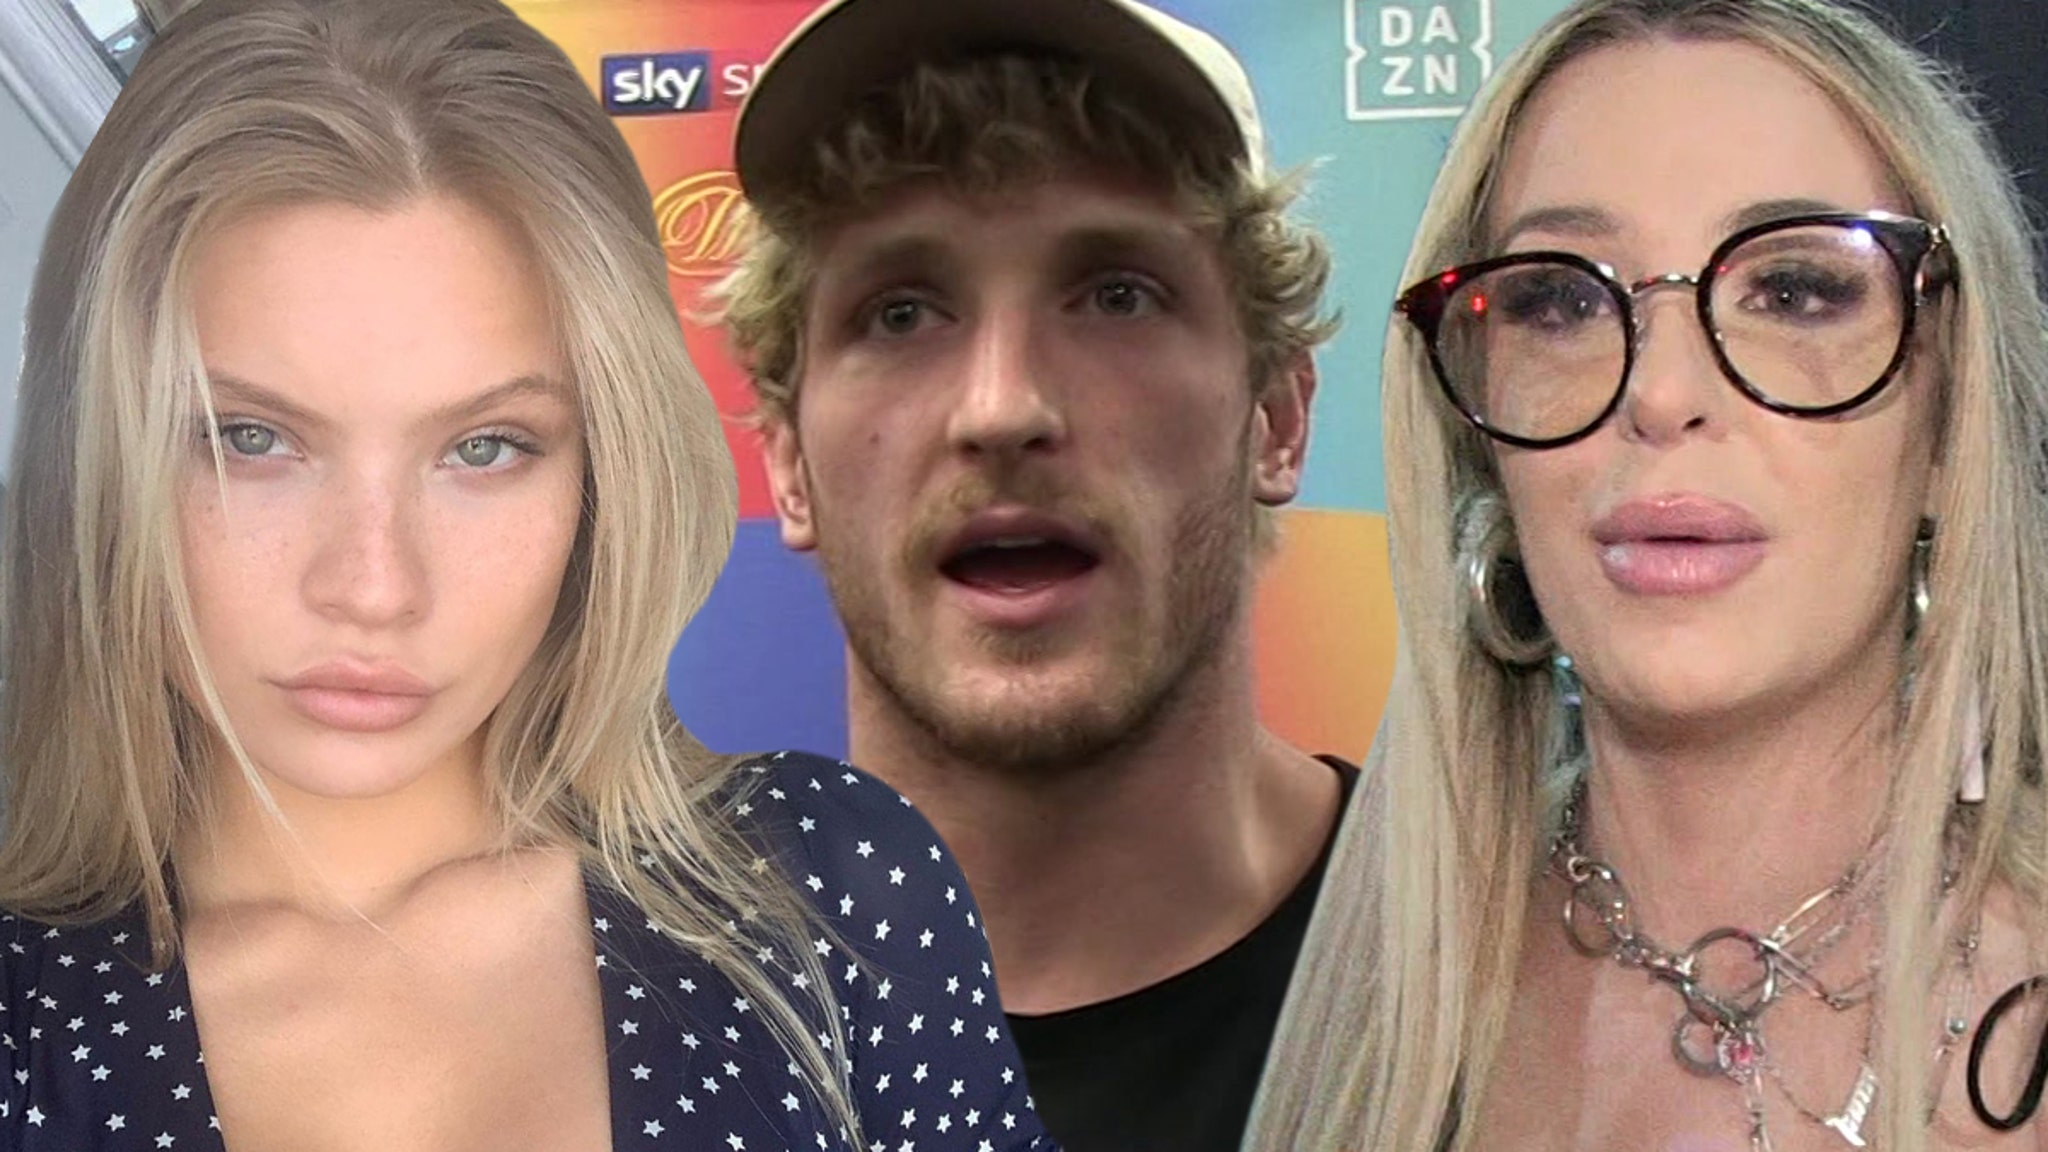 Josie Canseco and Logan Paul Break Up, But Not Because of Tana Mongeau